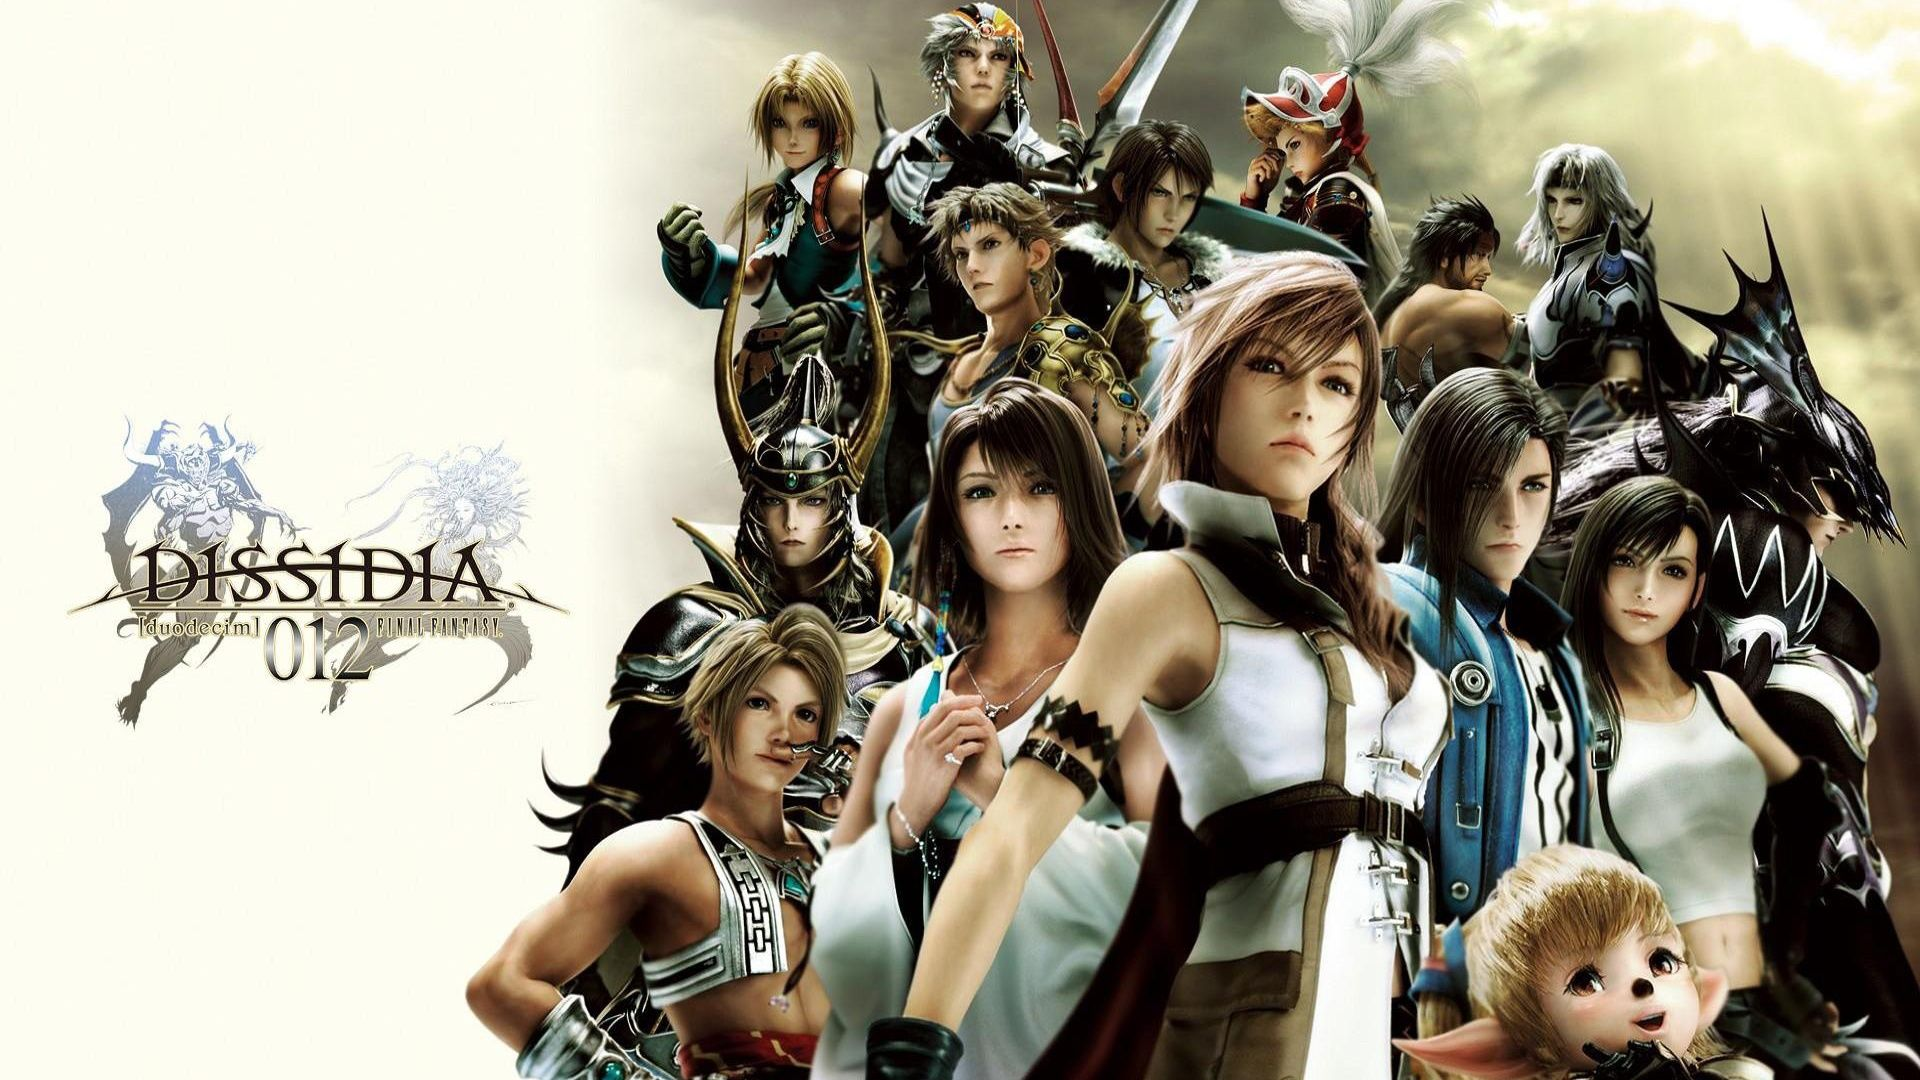 Dissidia Final Fantasy Wallpaper